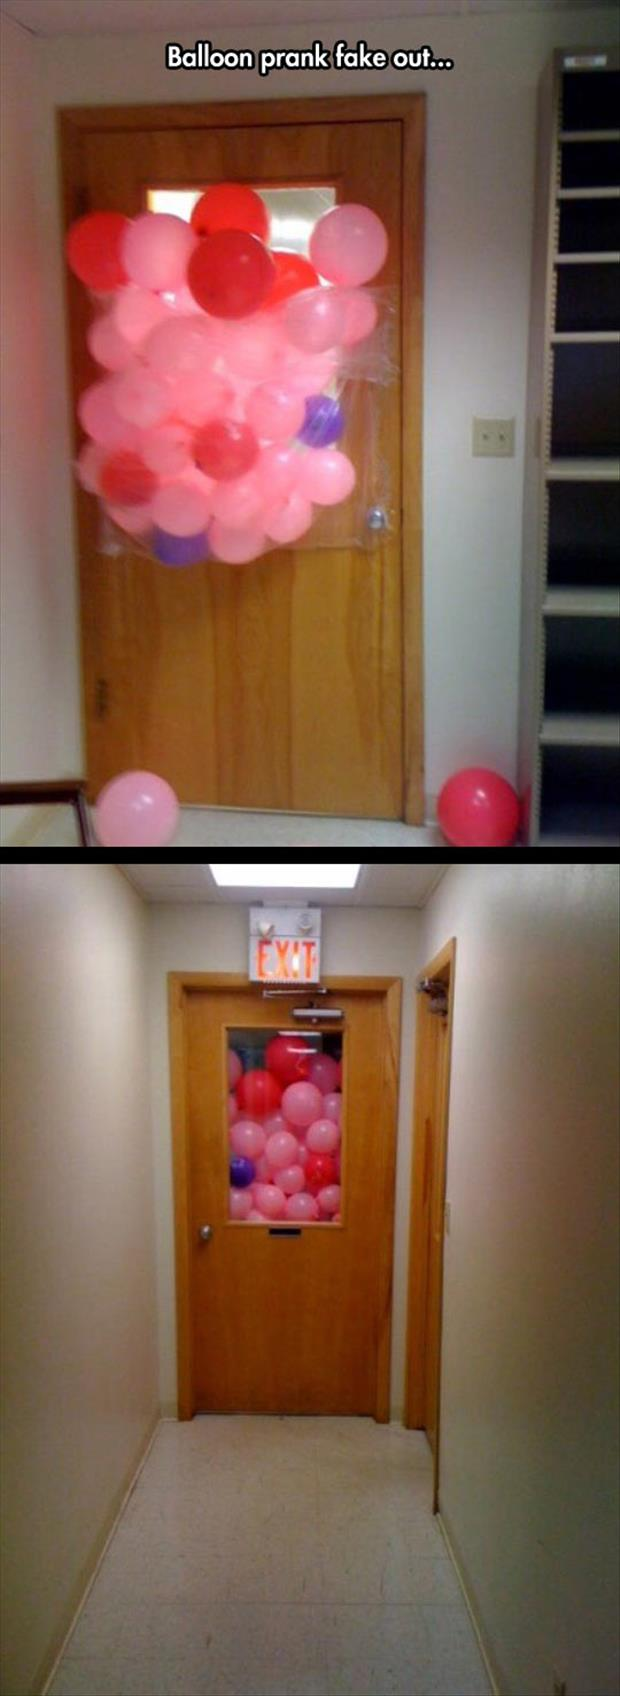 the fake balloon prank